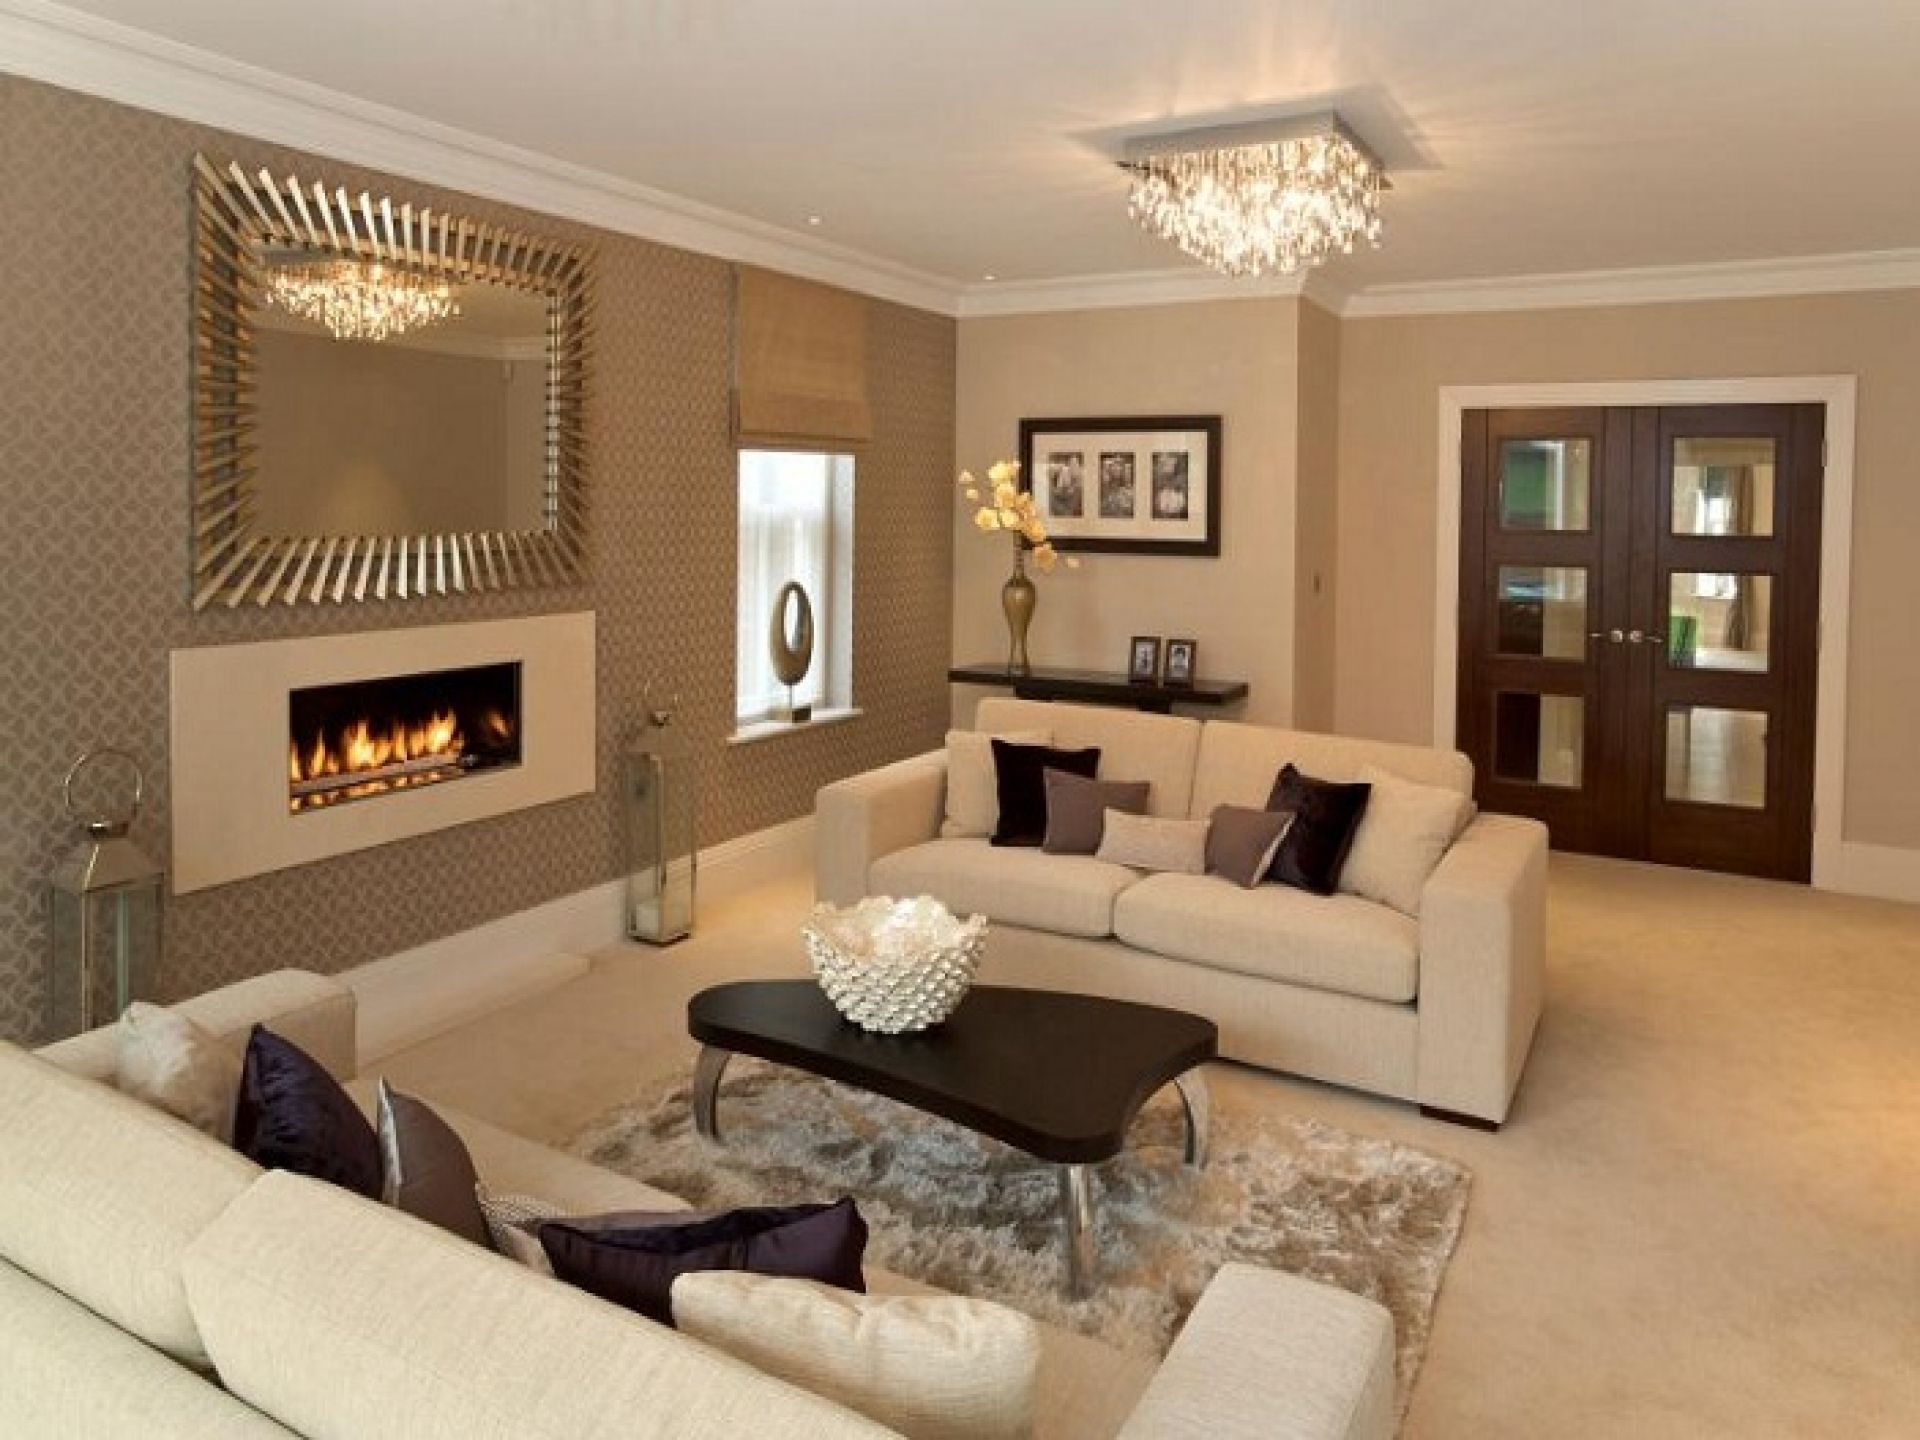 light-brown-wall-paint-livingroom-luxury-ceiling-glass-lights-fixtures- living-room-furniture-sets-modern-ideas-contemporary-small-formal-white-leather-